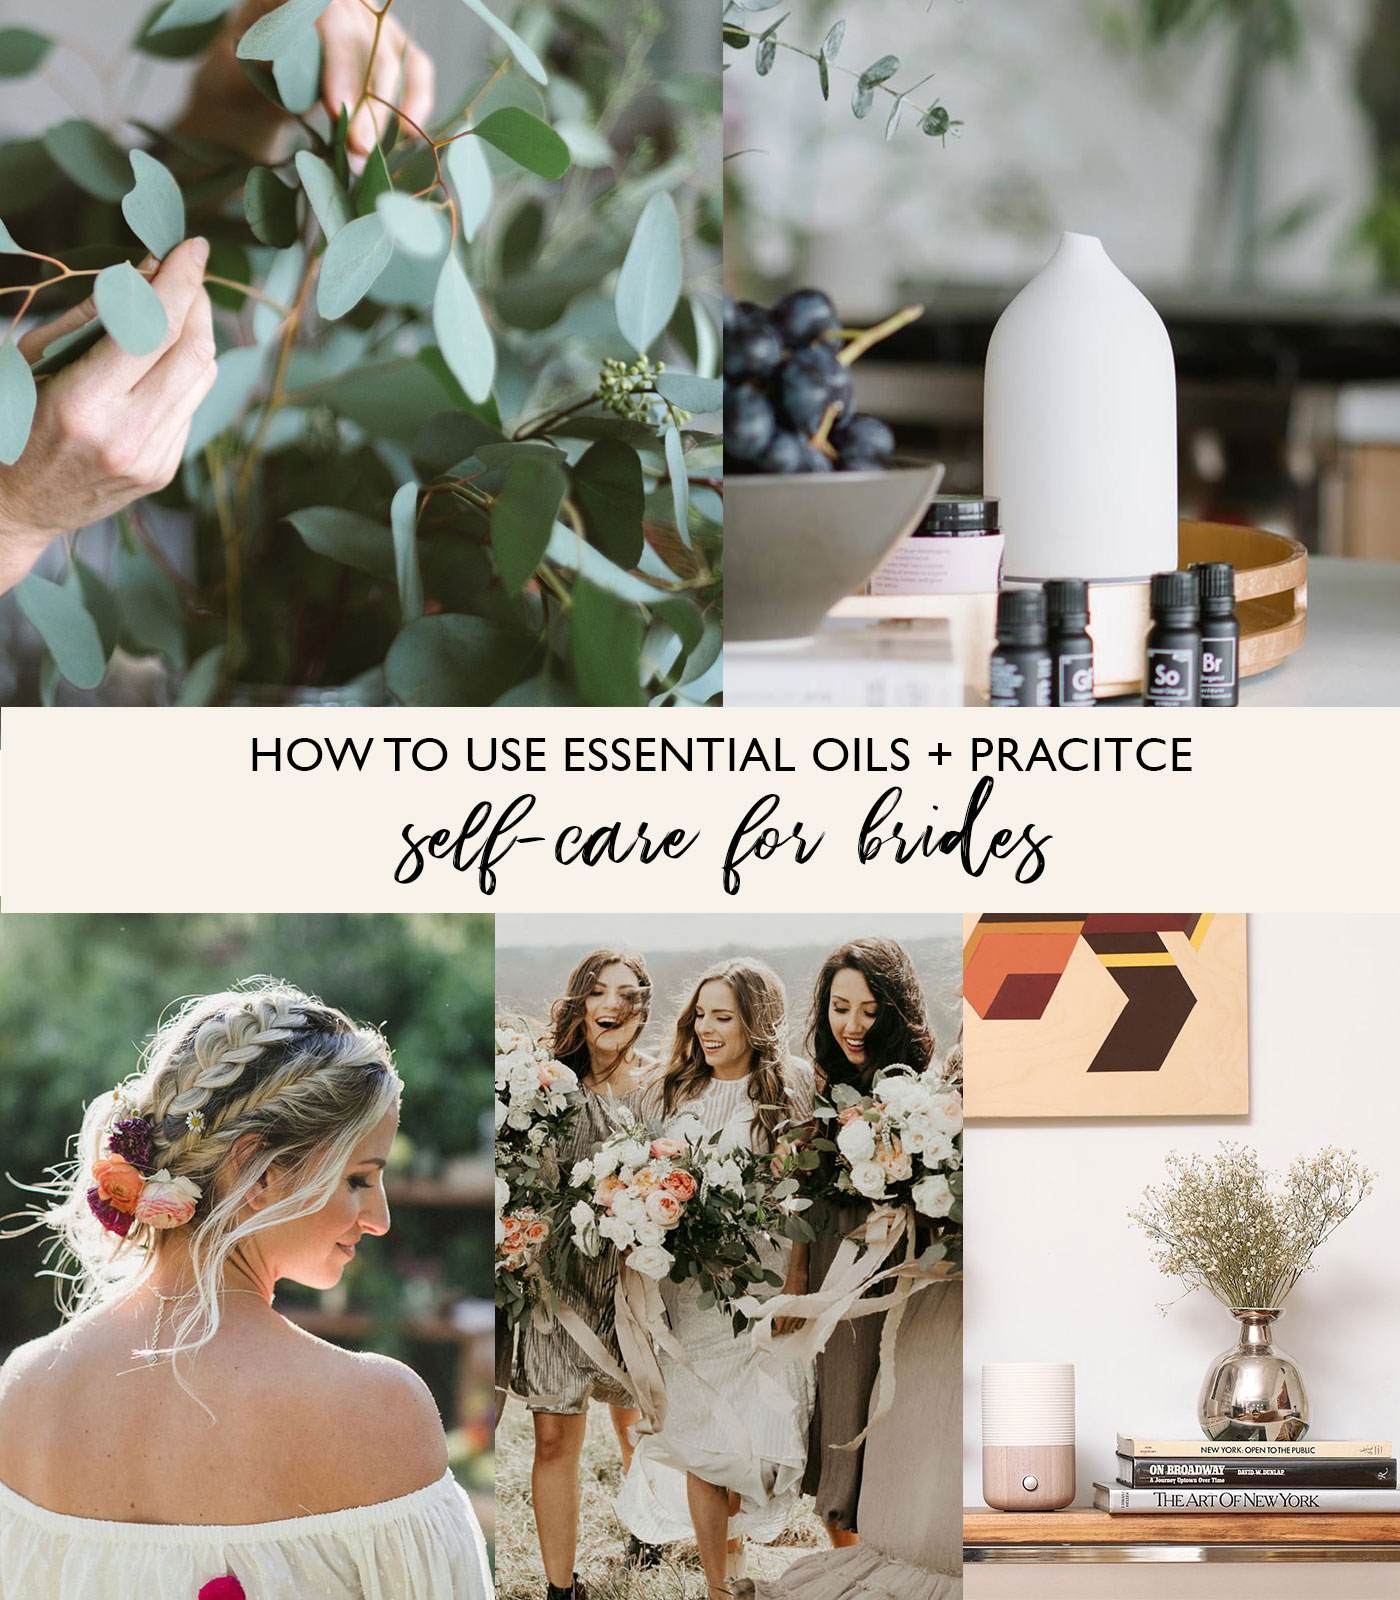 essential oils for bridal self care